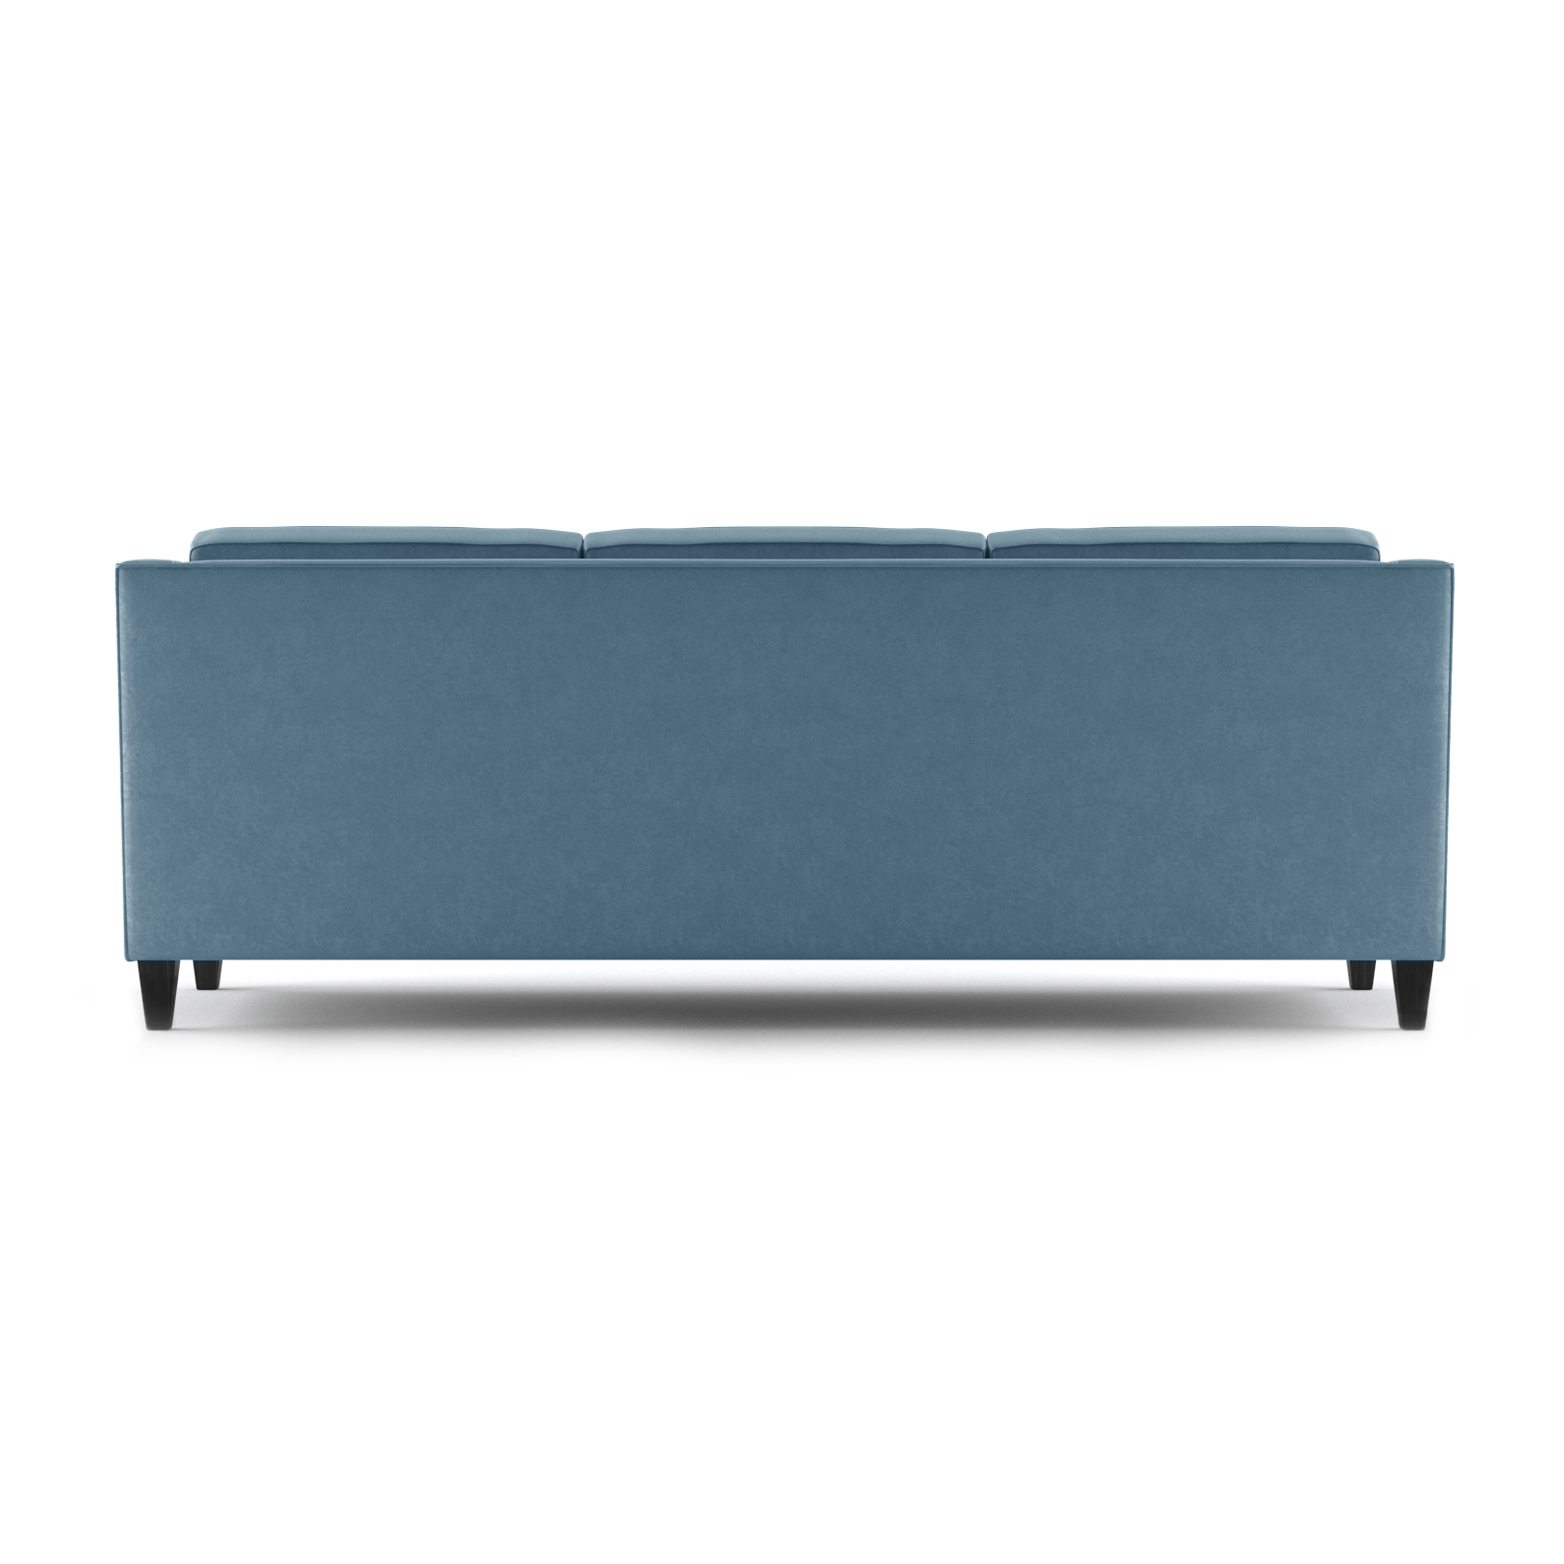 Fitzgerald Three and a Half Seater Sofa by Bonham & Bonham Sky 07